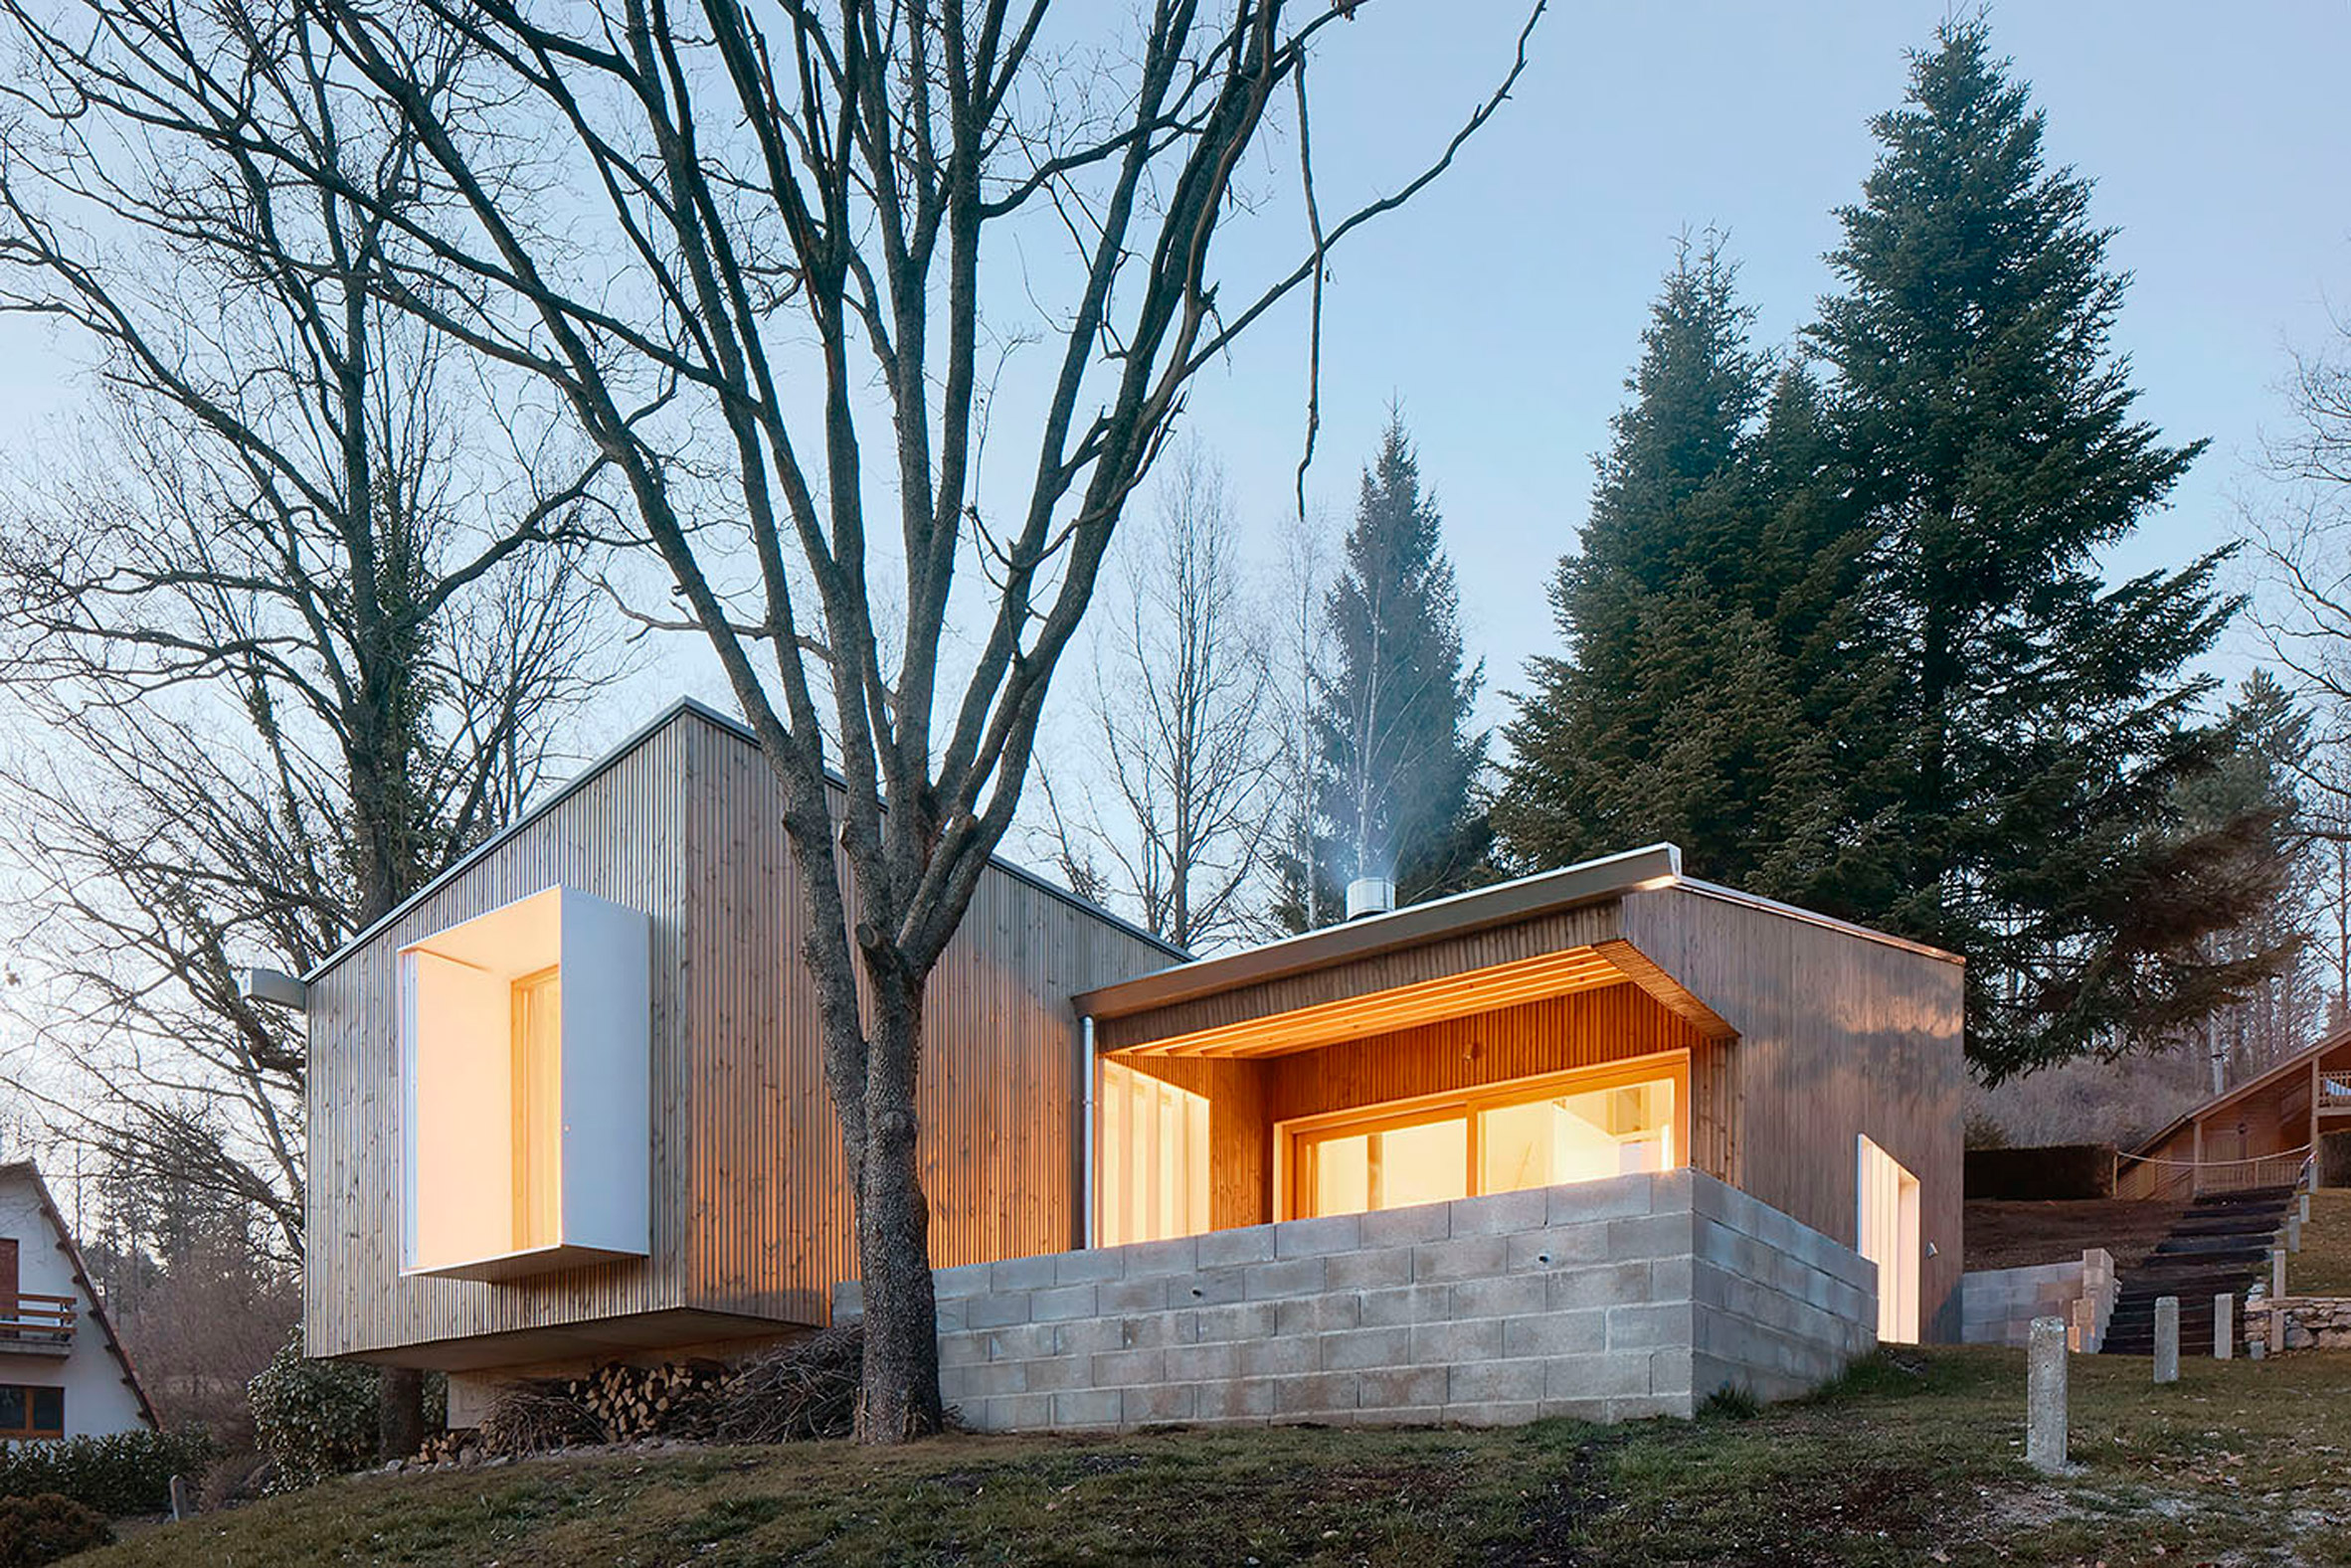 7. Prefababricated wooden home in the Pyrenees by architect Marc Mogas - Prefabricated wooden home in the Pyrenees by architect Marc Mogas